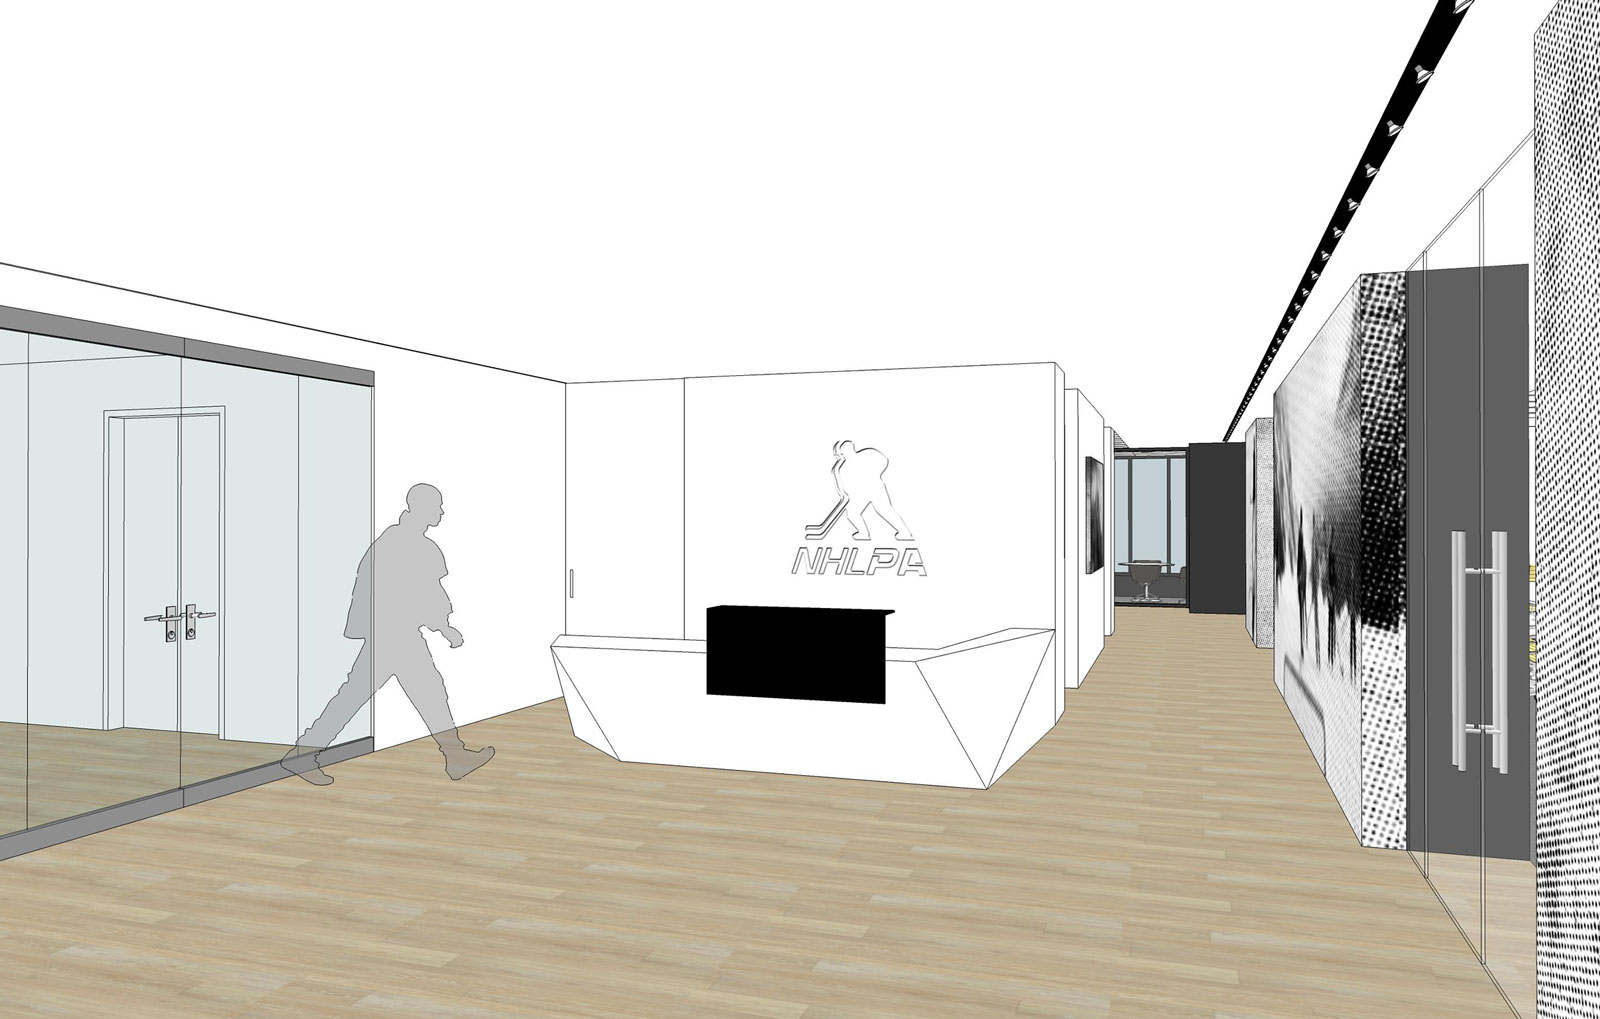 NHLPA rendering of reception area with wood floor and reception desk with NHLPA logo behind